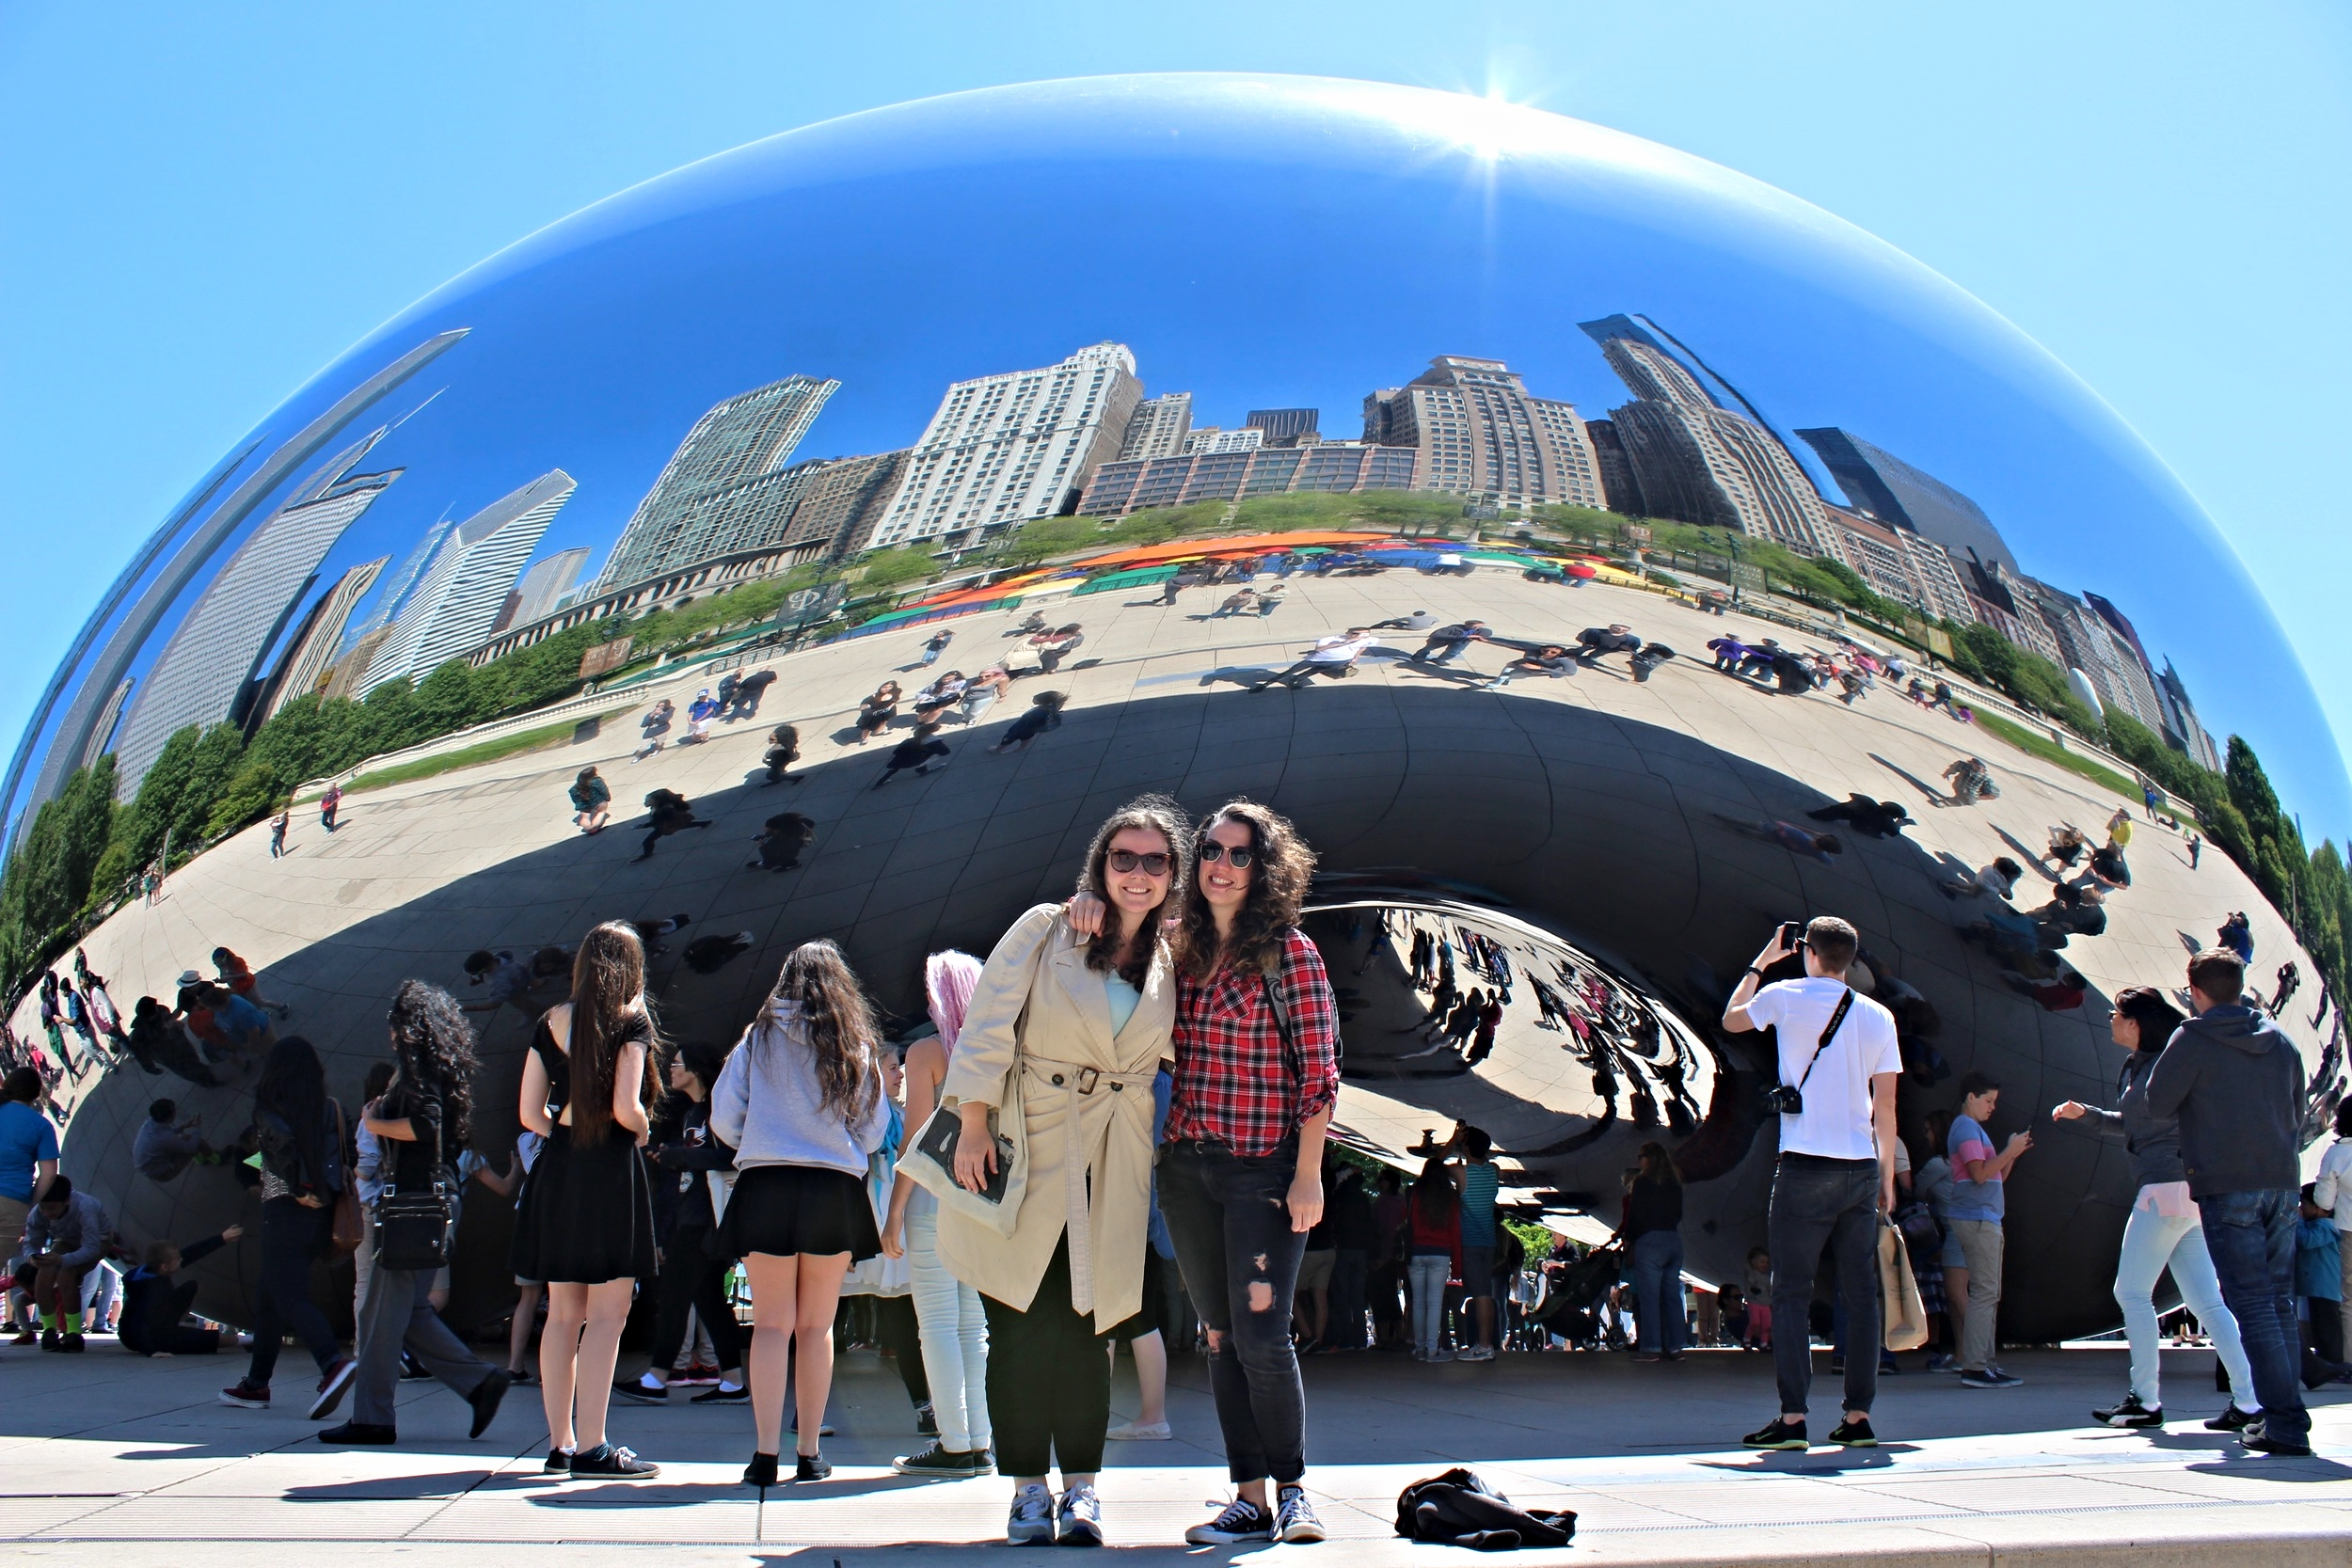 Two Dutch gals in front of the Bean!